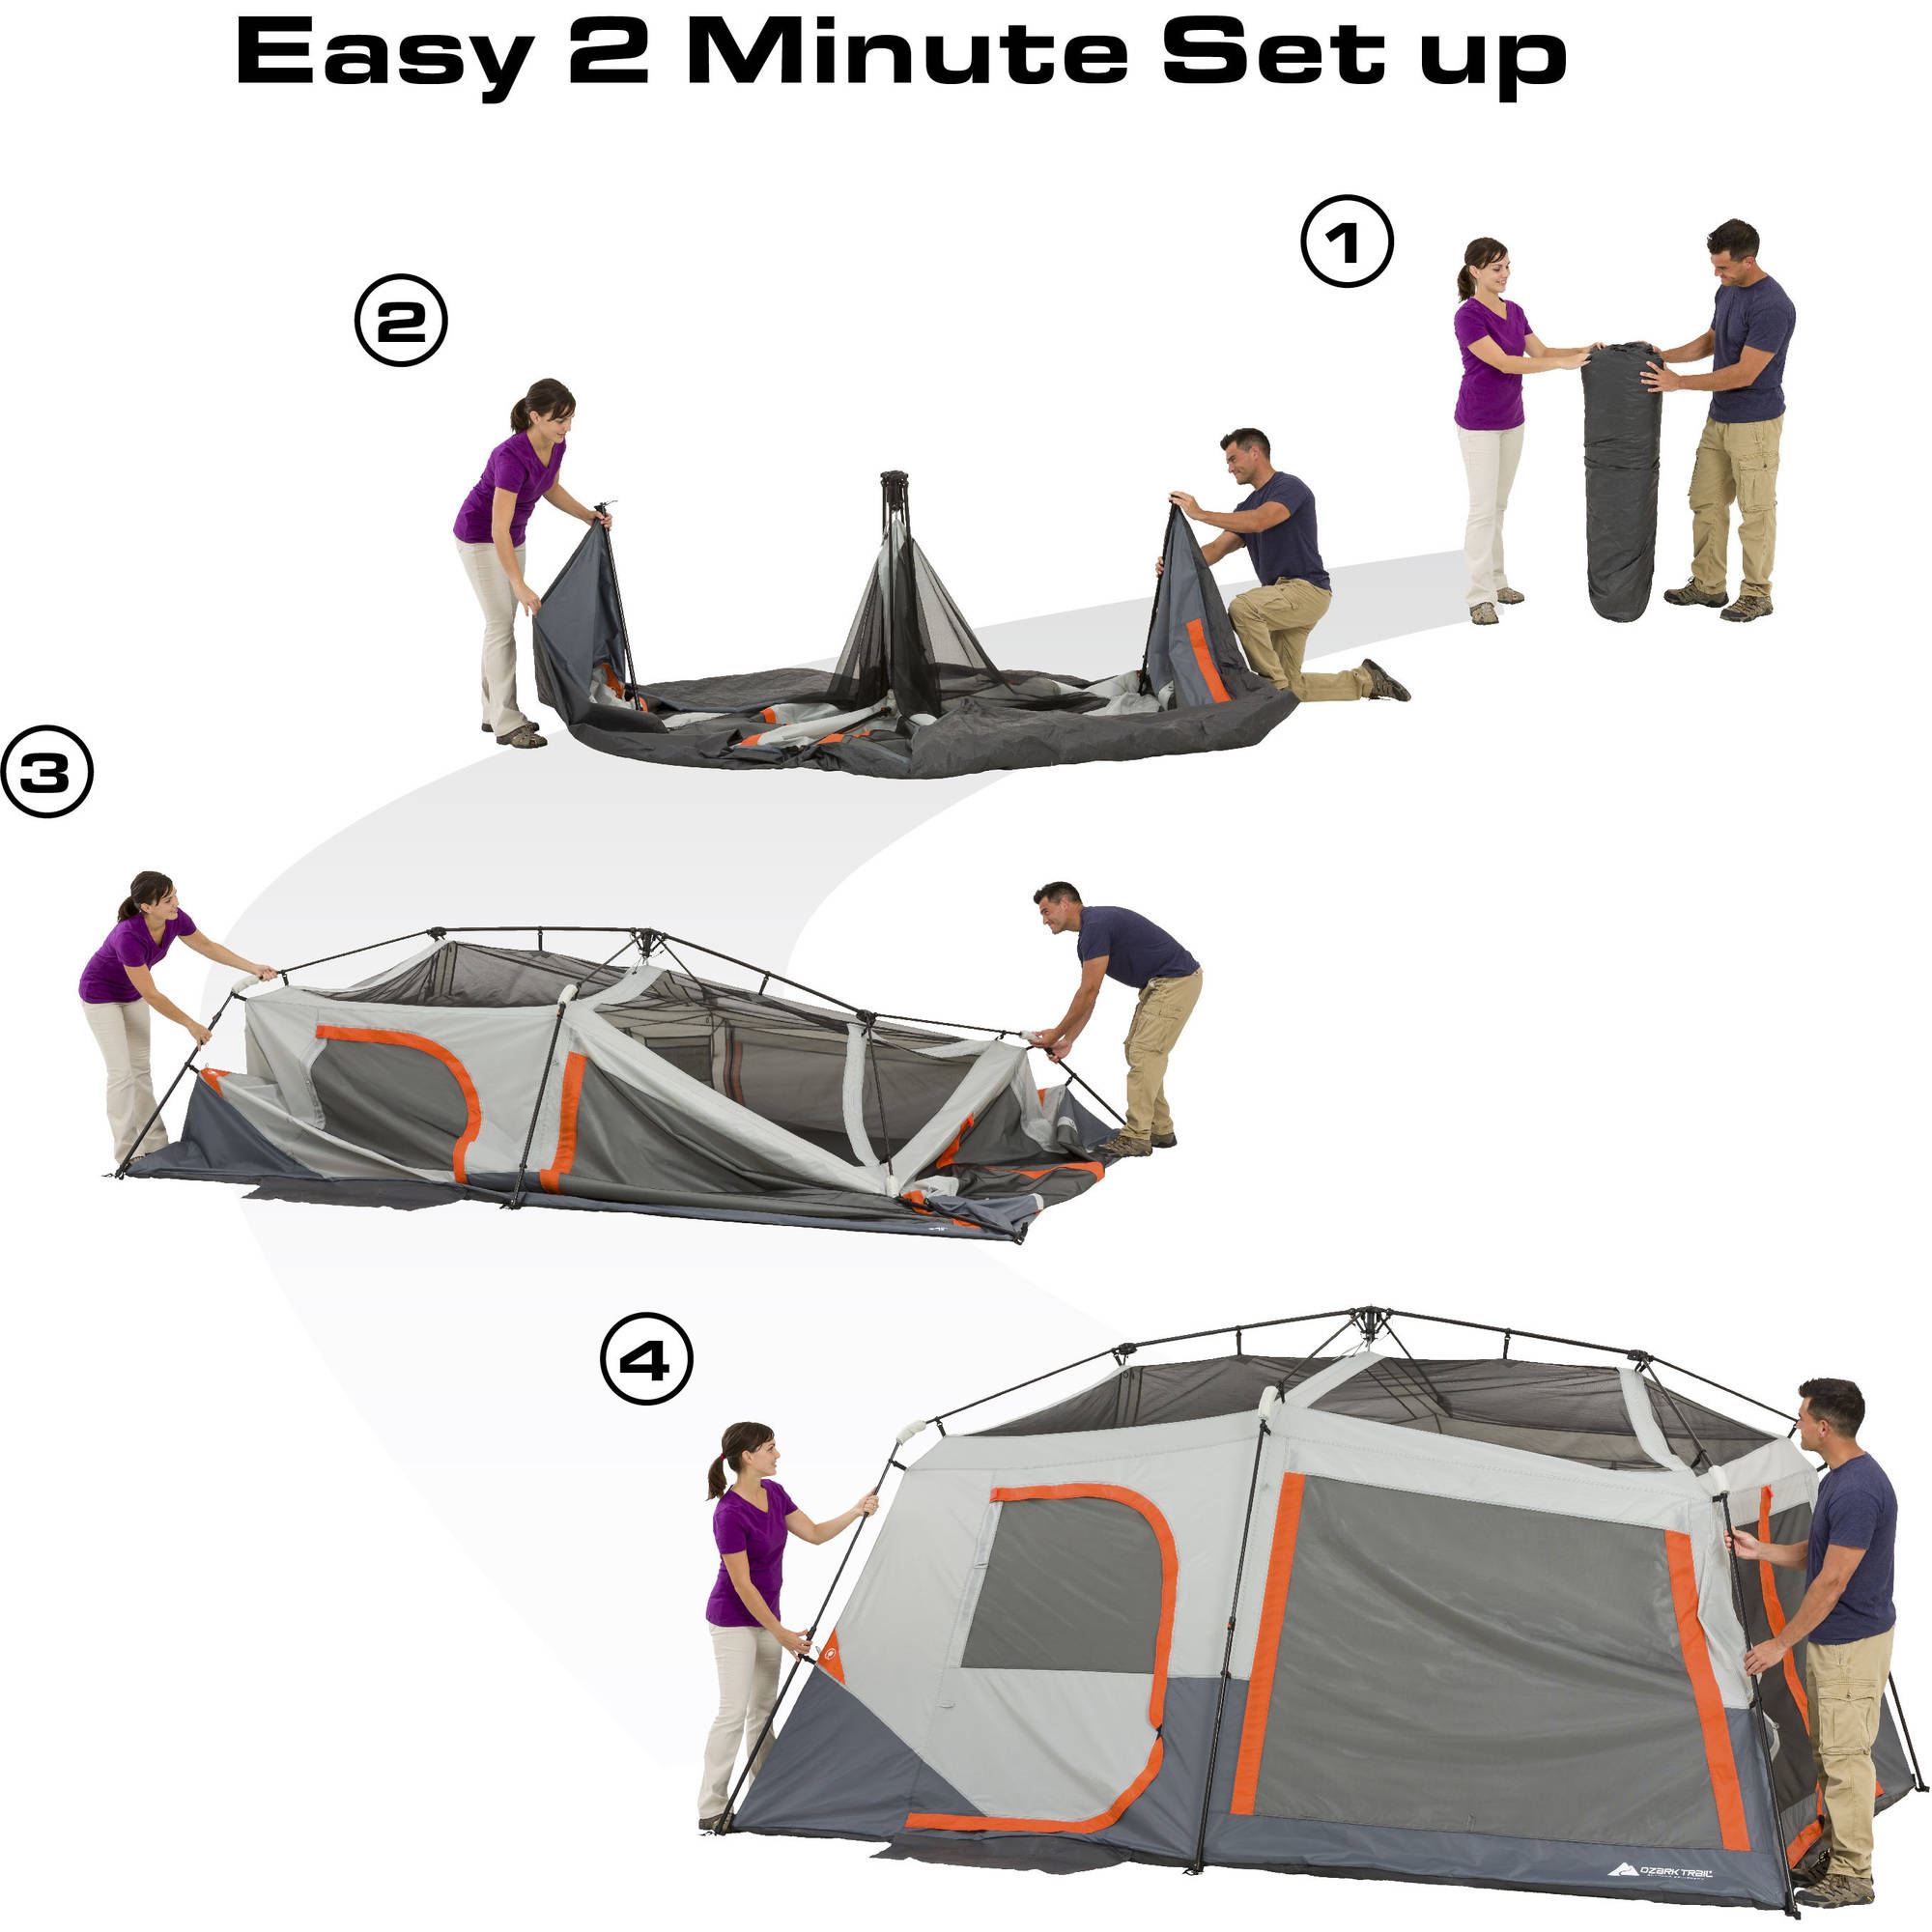 Ozark Trail 14u0027 x 10u0027 x 78  Instant Cabin Tent with Light Sleeps 10 - Walmart.com  sc 1 st  Walmart & Ozark Trail 14u0027 x 10u0027 x 78